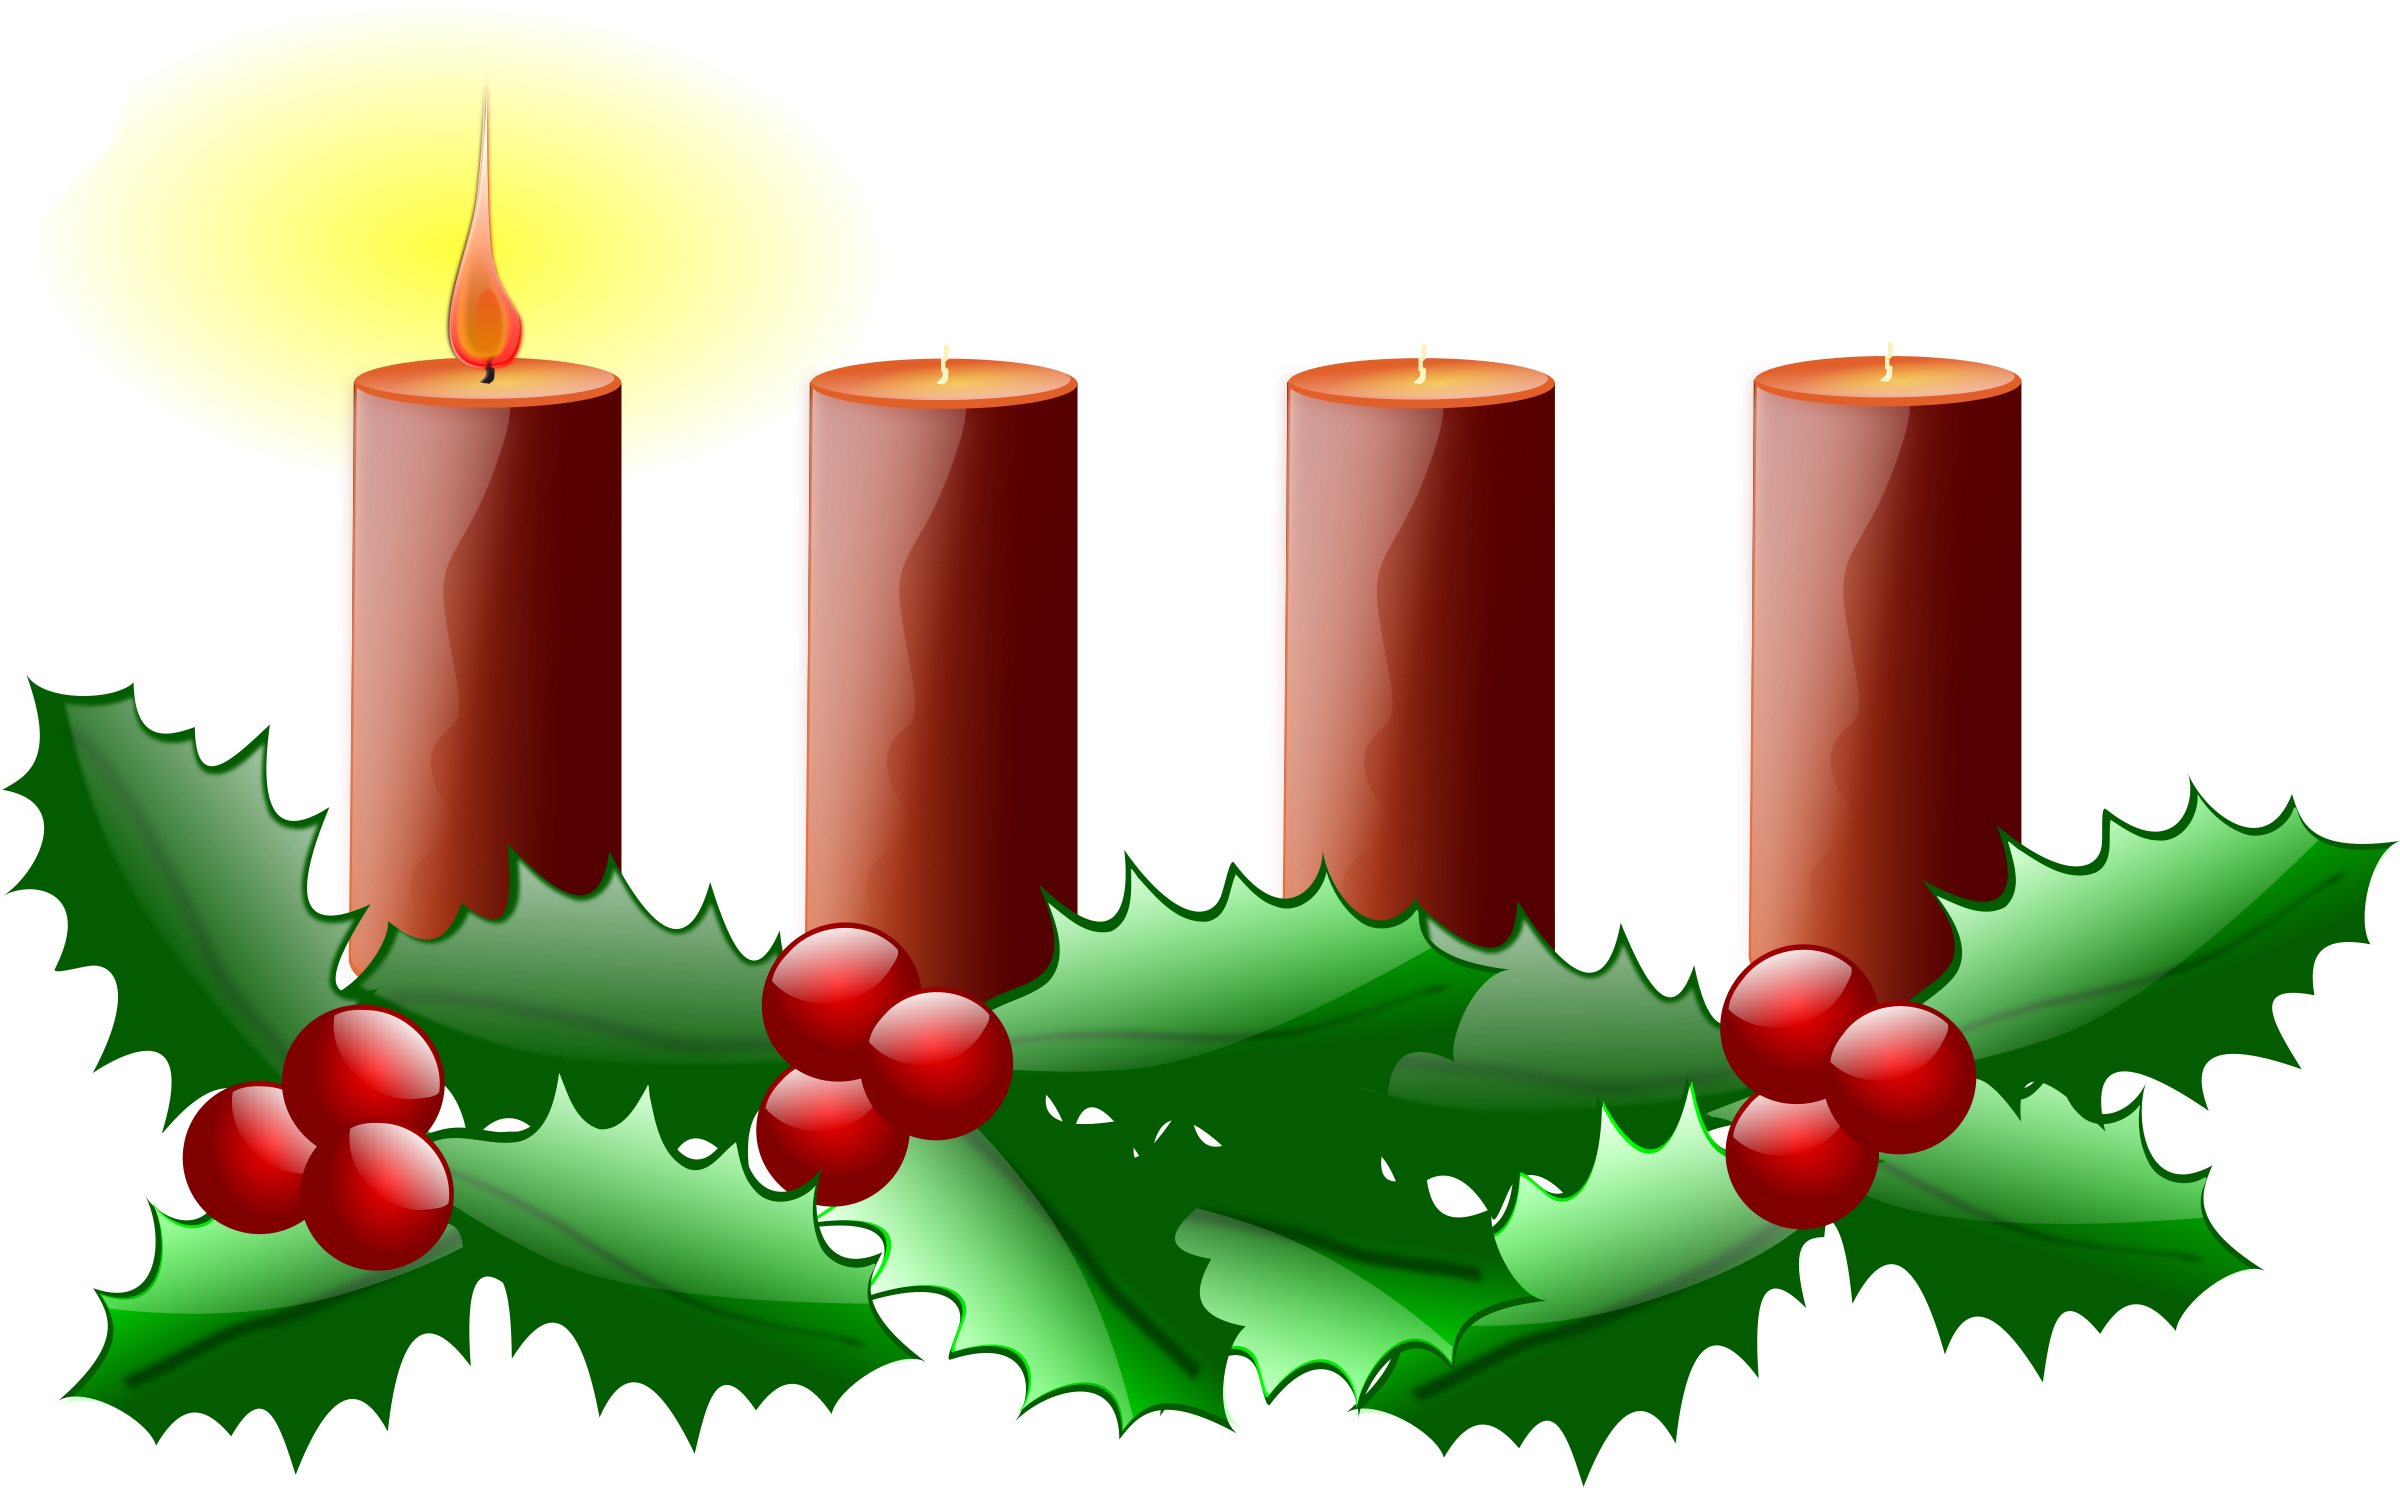 Advent Wreath Clipart Free 101 Clip Art - Advent Candles Clipart - Png Download (2400x1488), Png Download